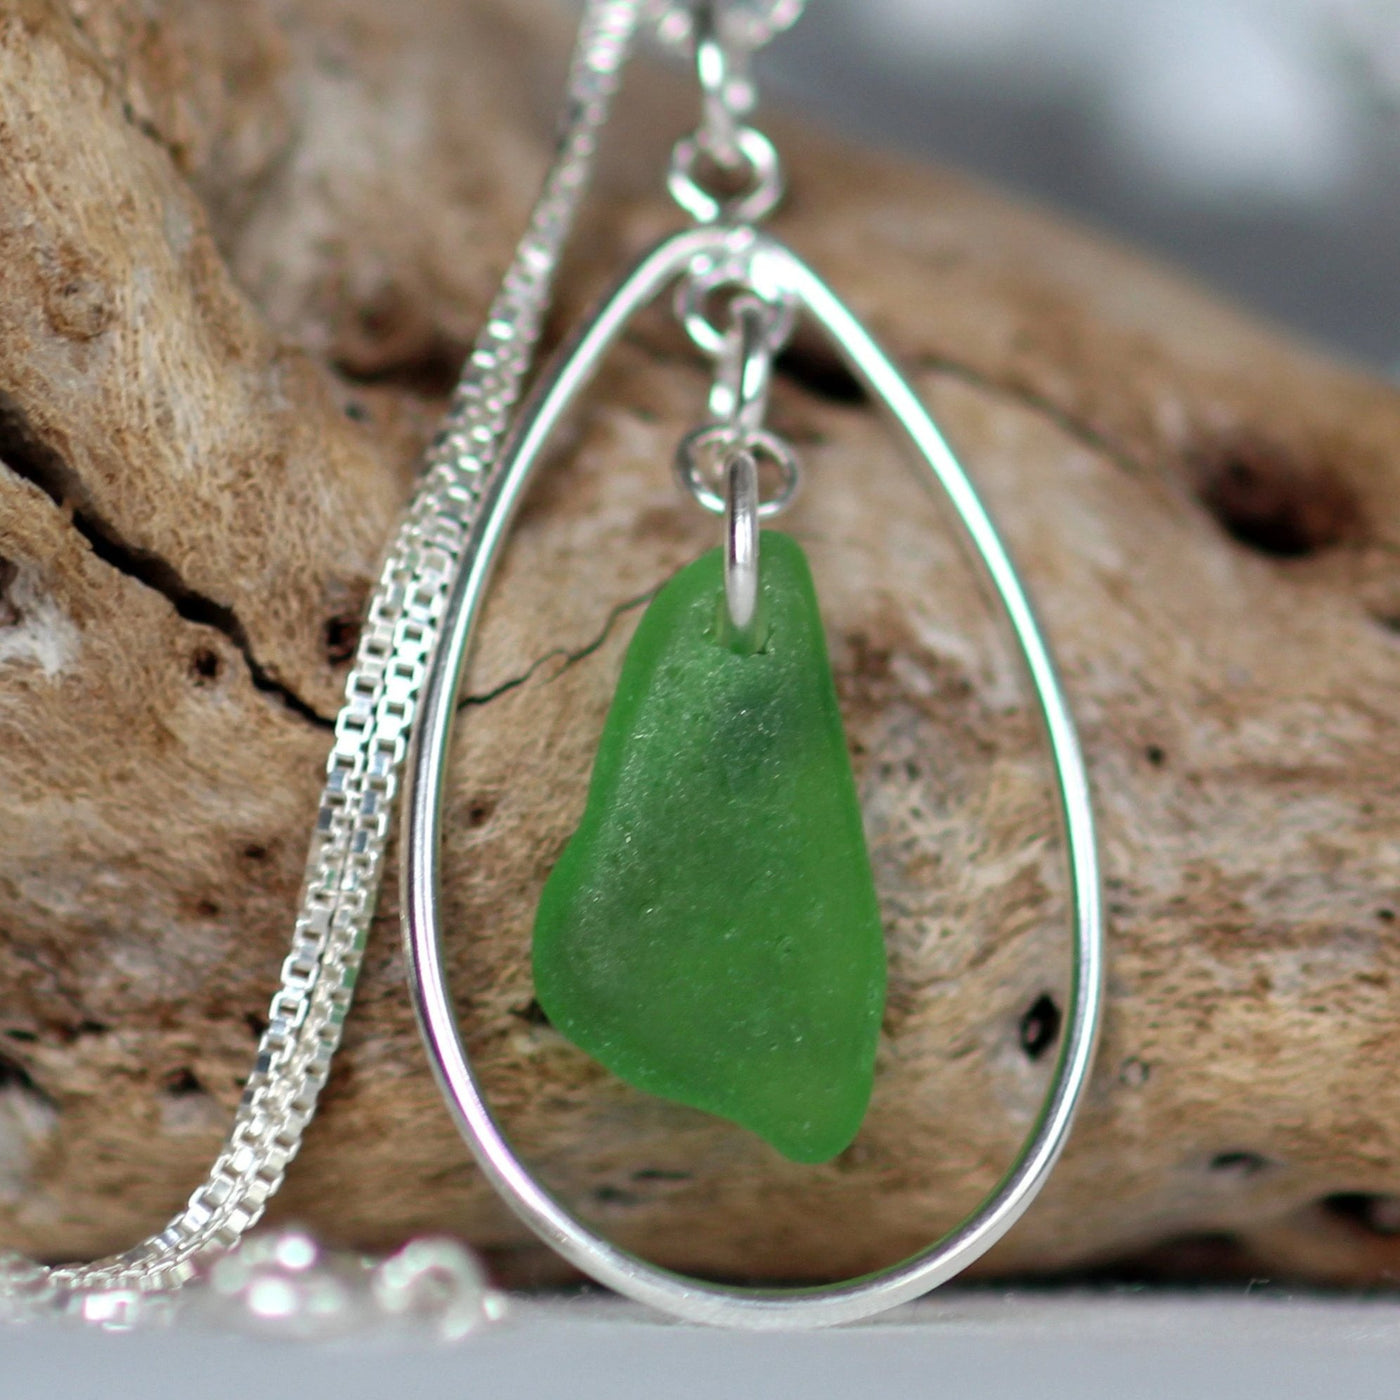 Sea glass necklace, mom gift, kelly green necklace, nova scotia, sea glass pendant, halifax, mermaid tears, sea glass jewelry canada,